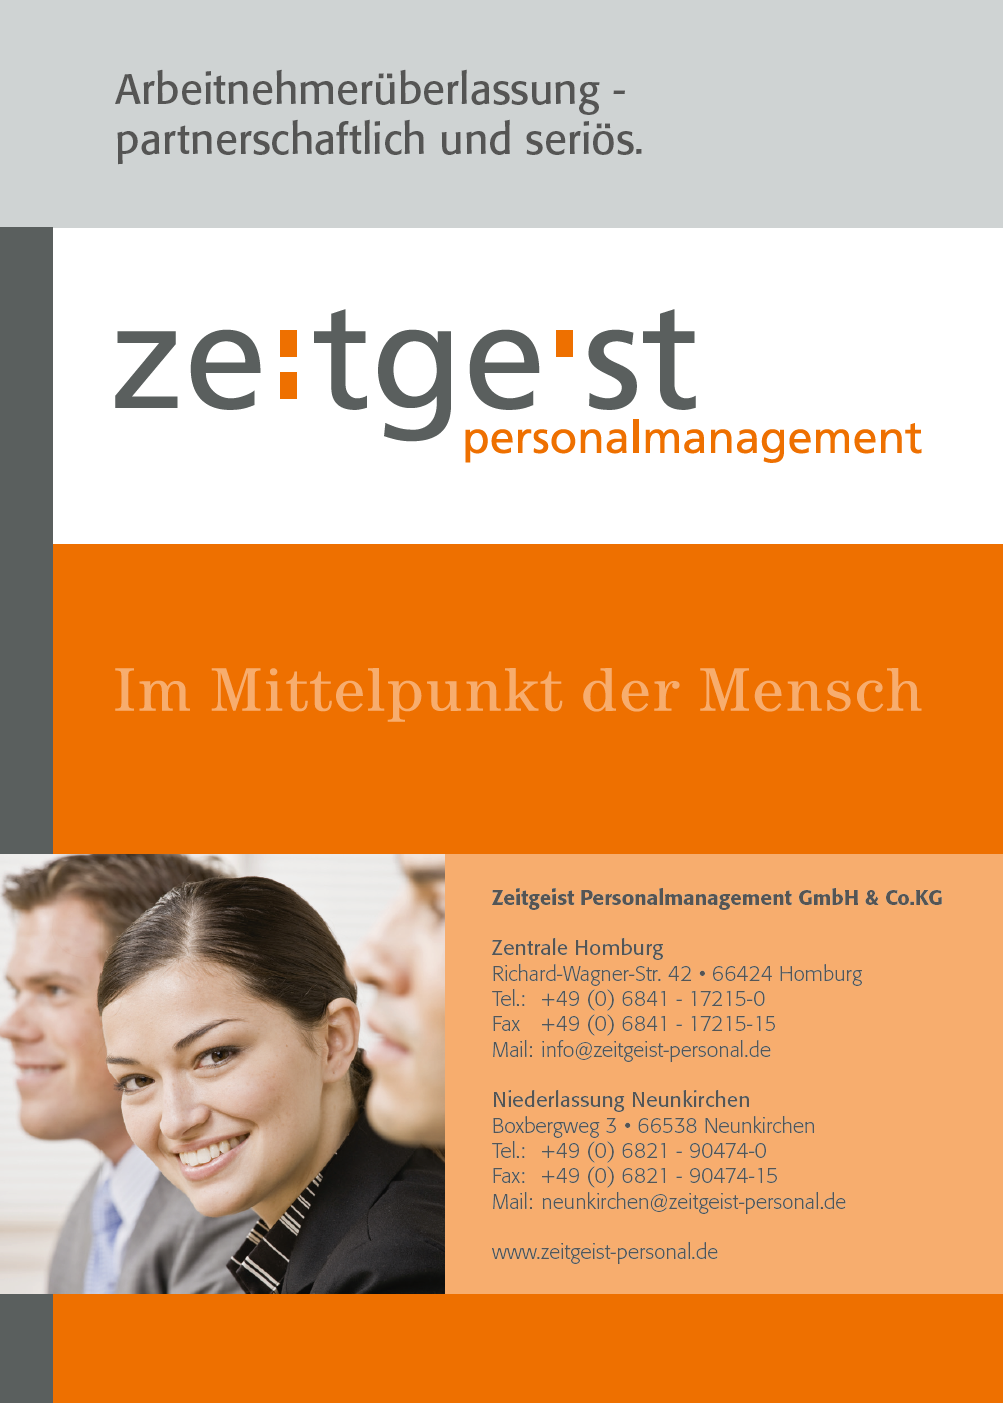 ZeitgeistPersonalmanagement